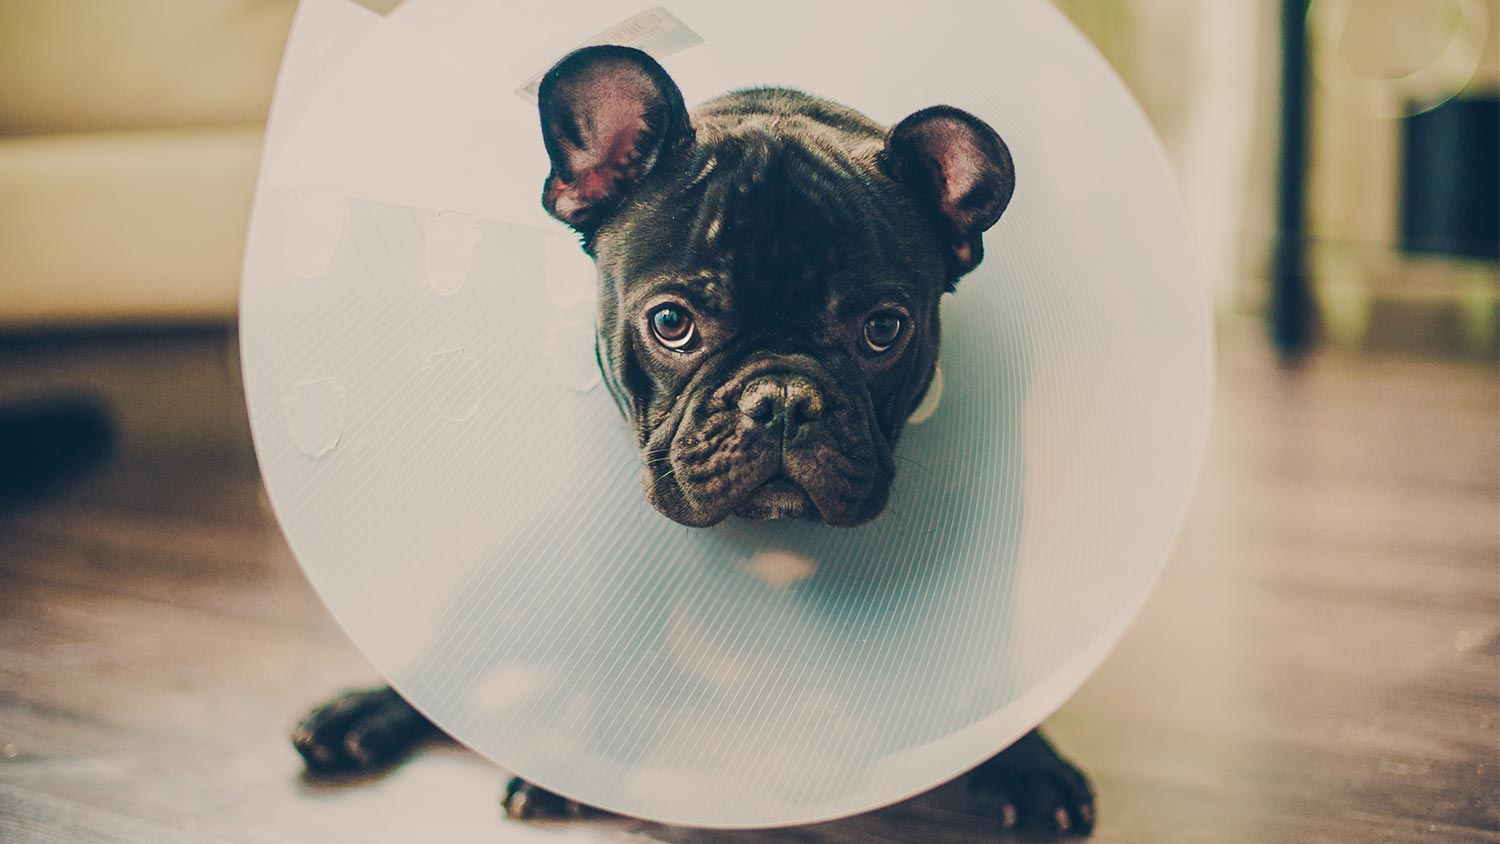 7 Ways to Prevent Canine Injuries at Home